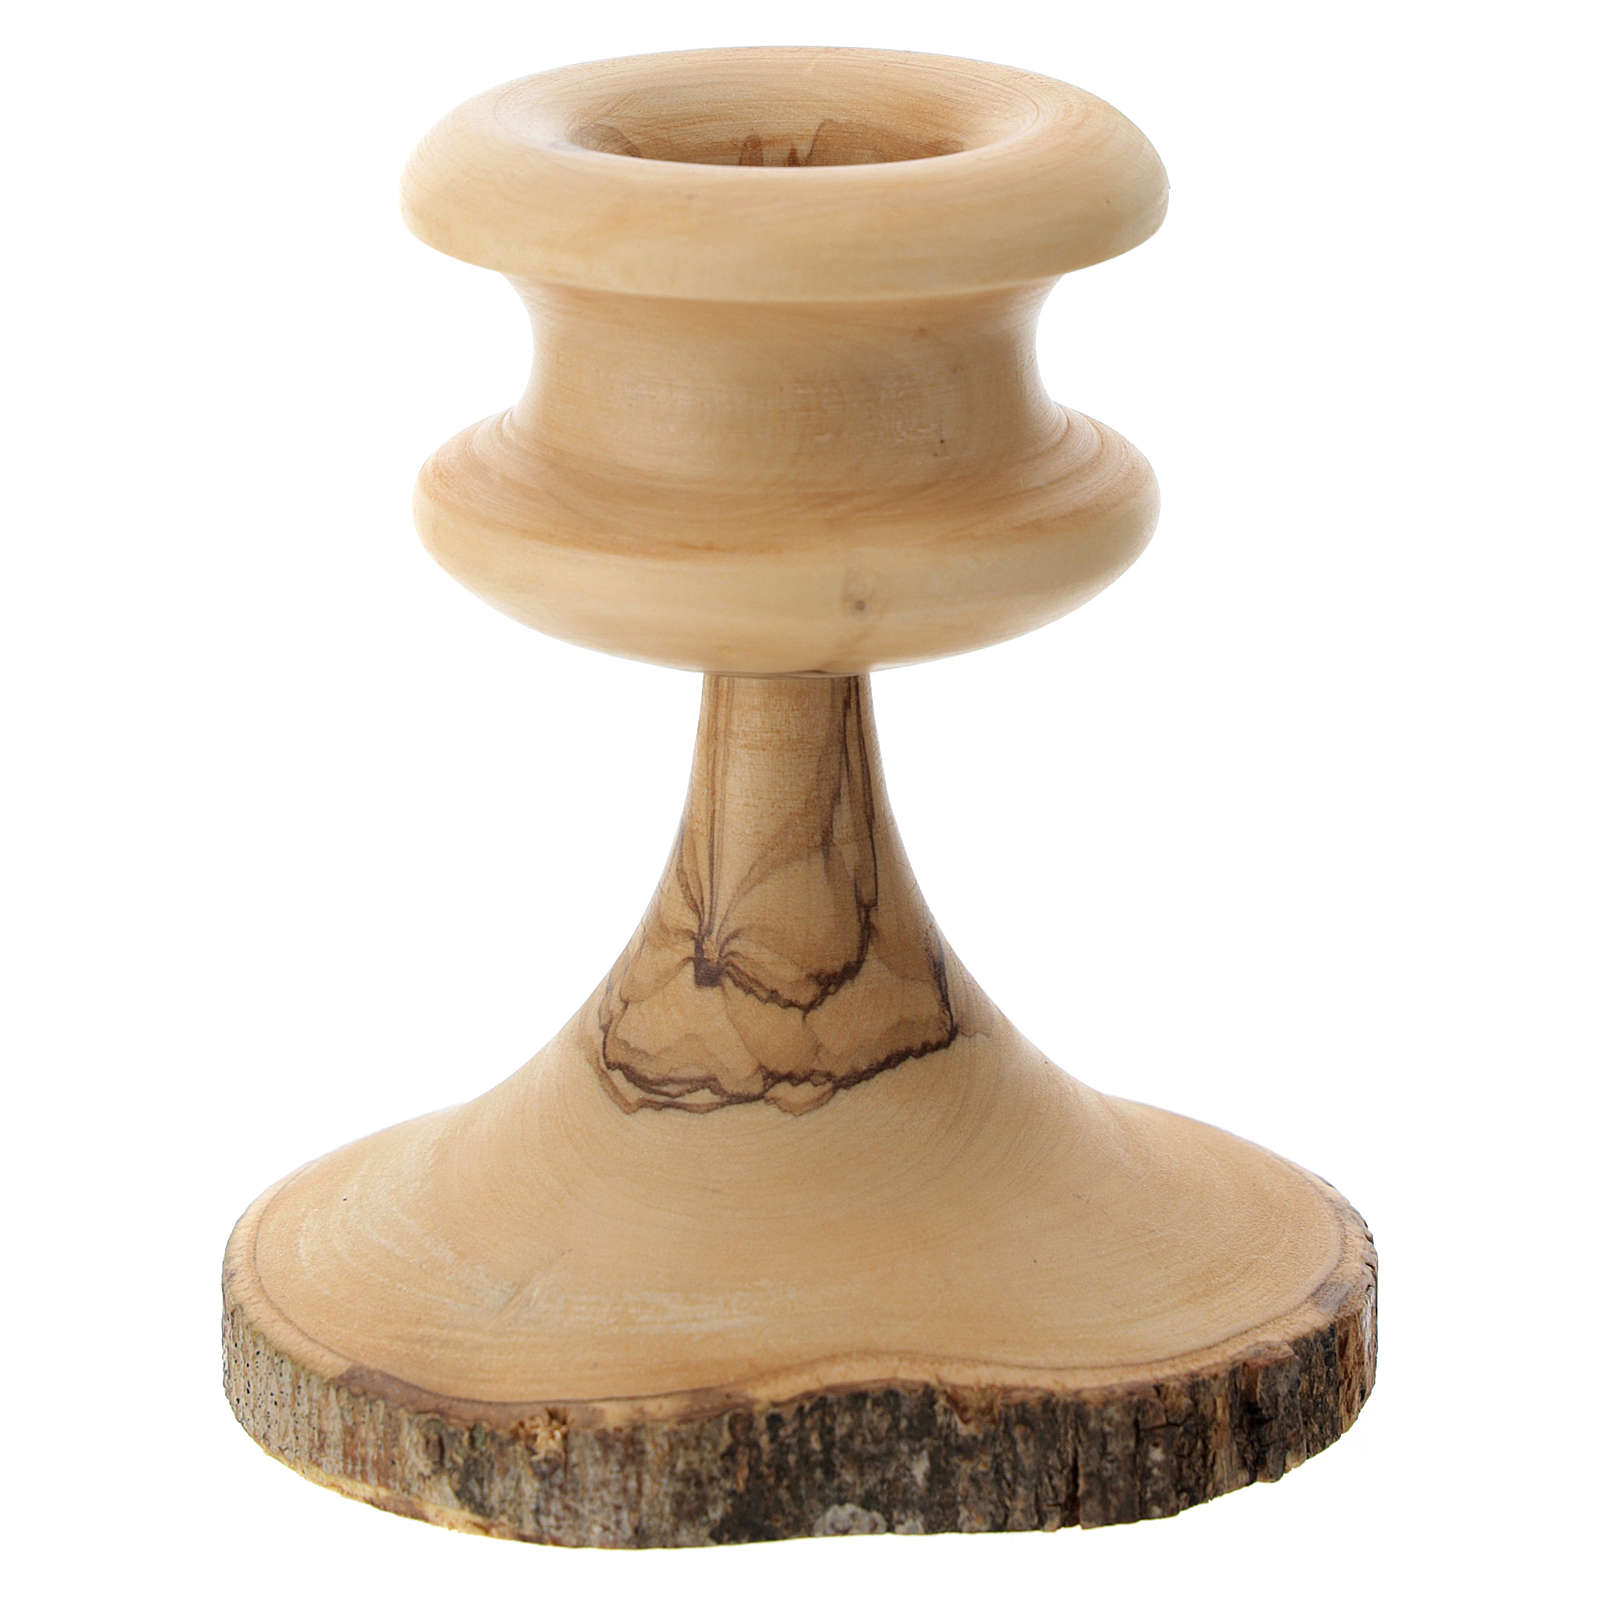 Olive wood bark candle-holder 4